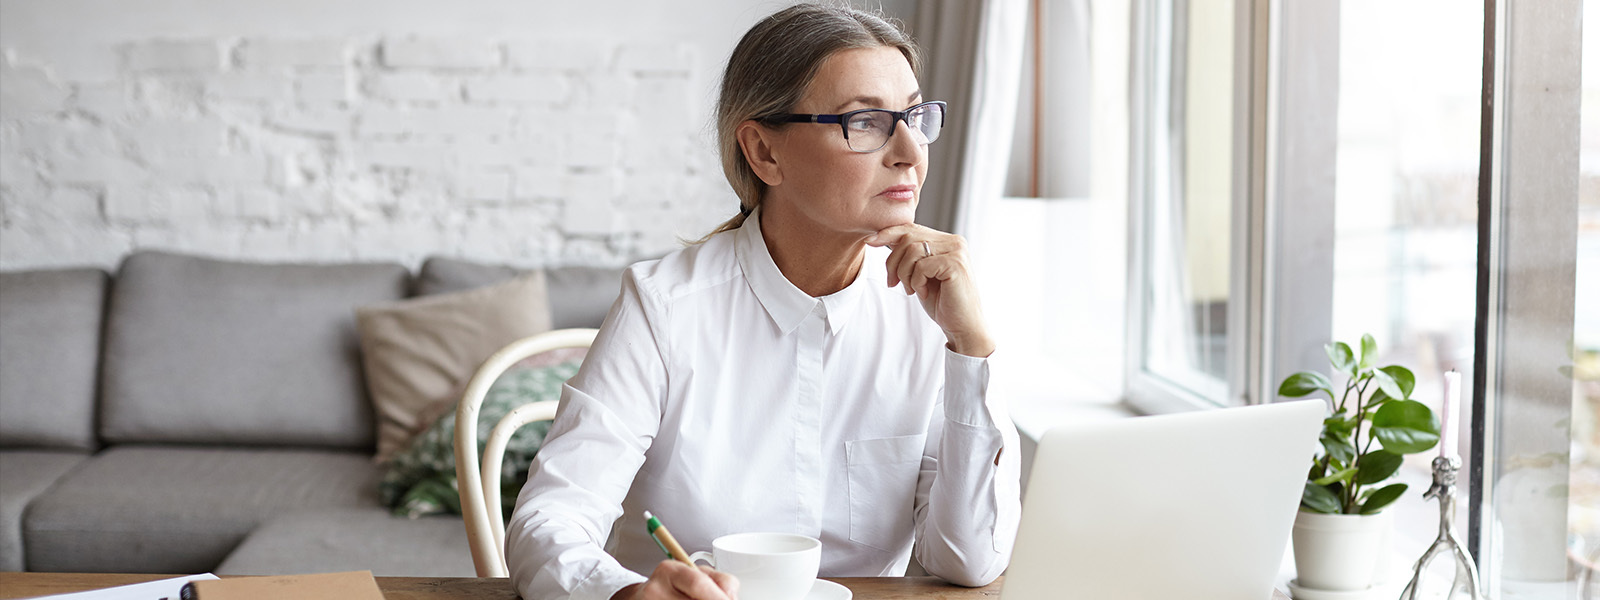 Image of mature woman in thought while working on laptop